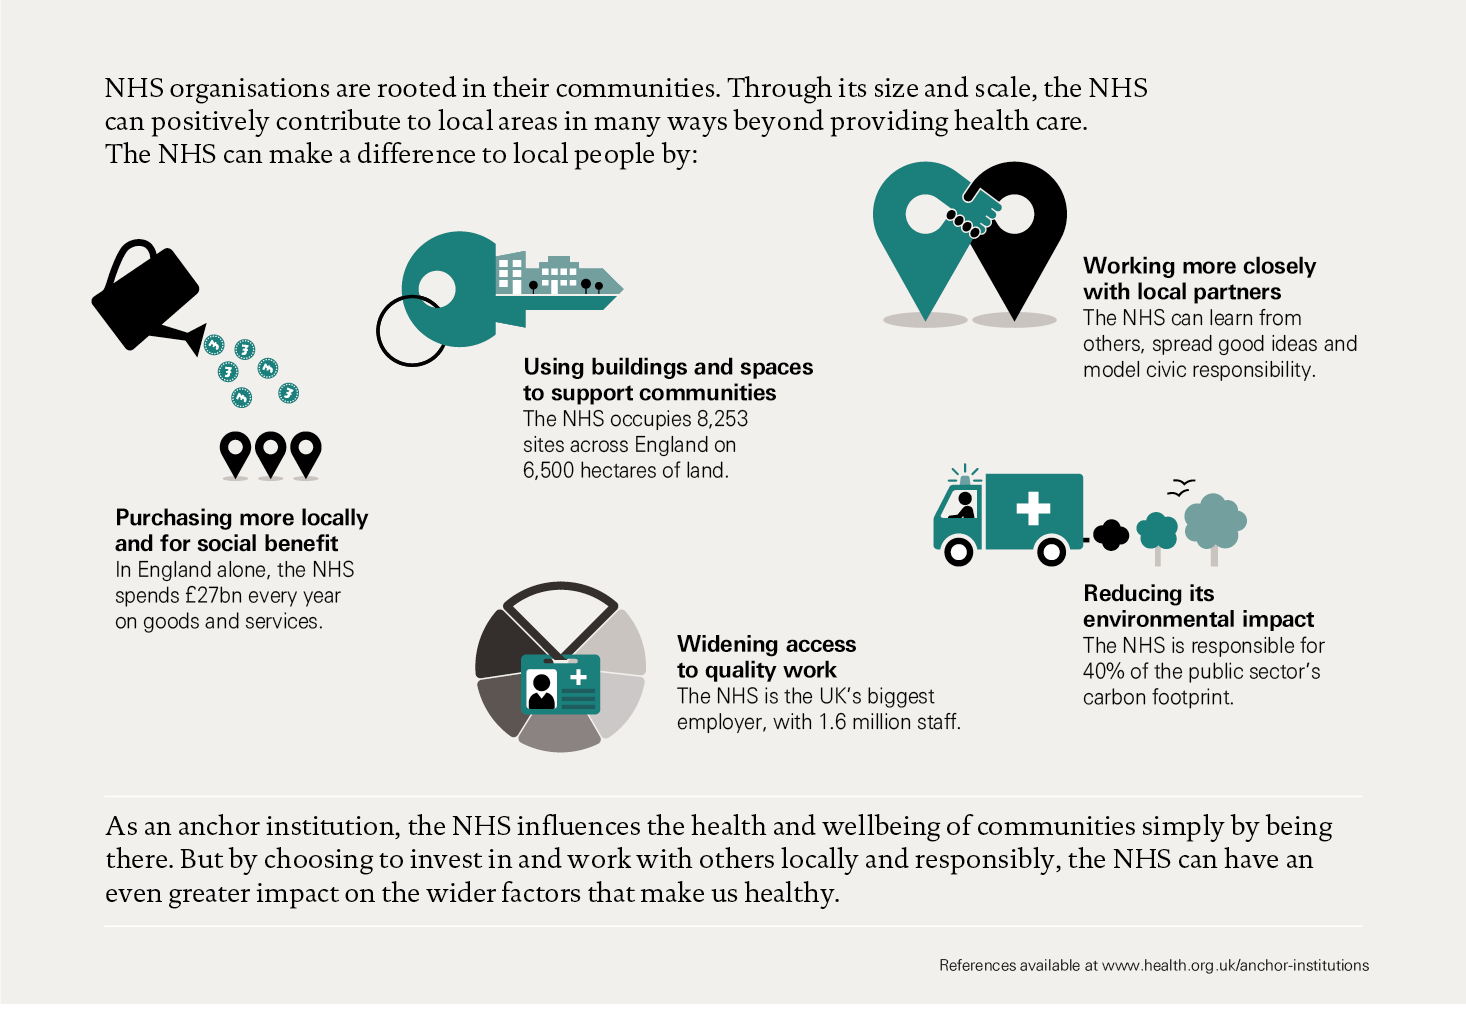 Figure 1: What makes the NHS an anchor institution?